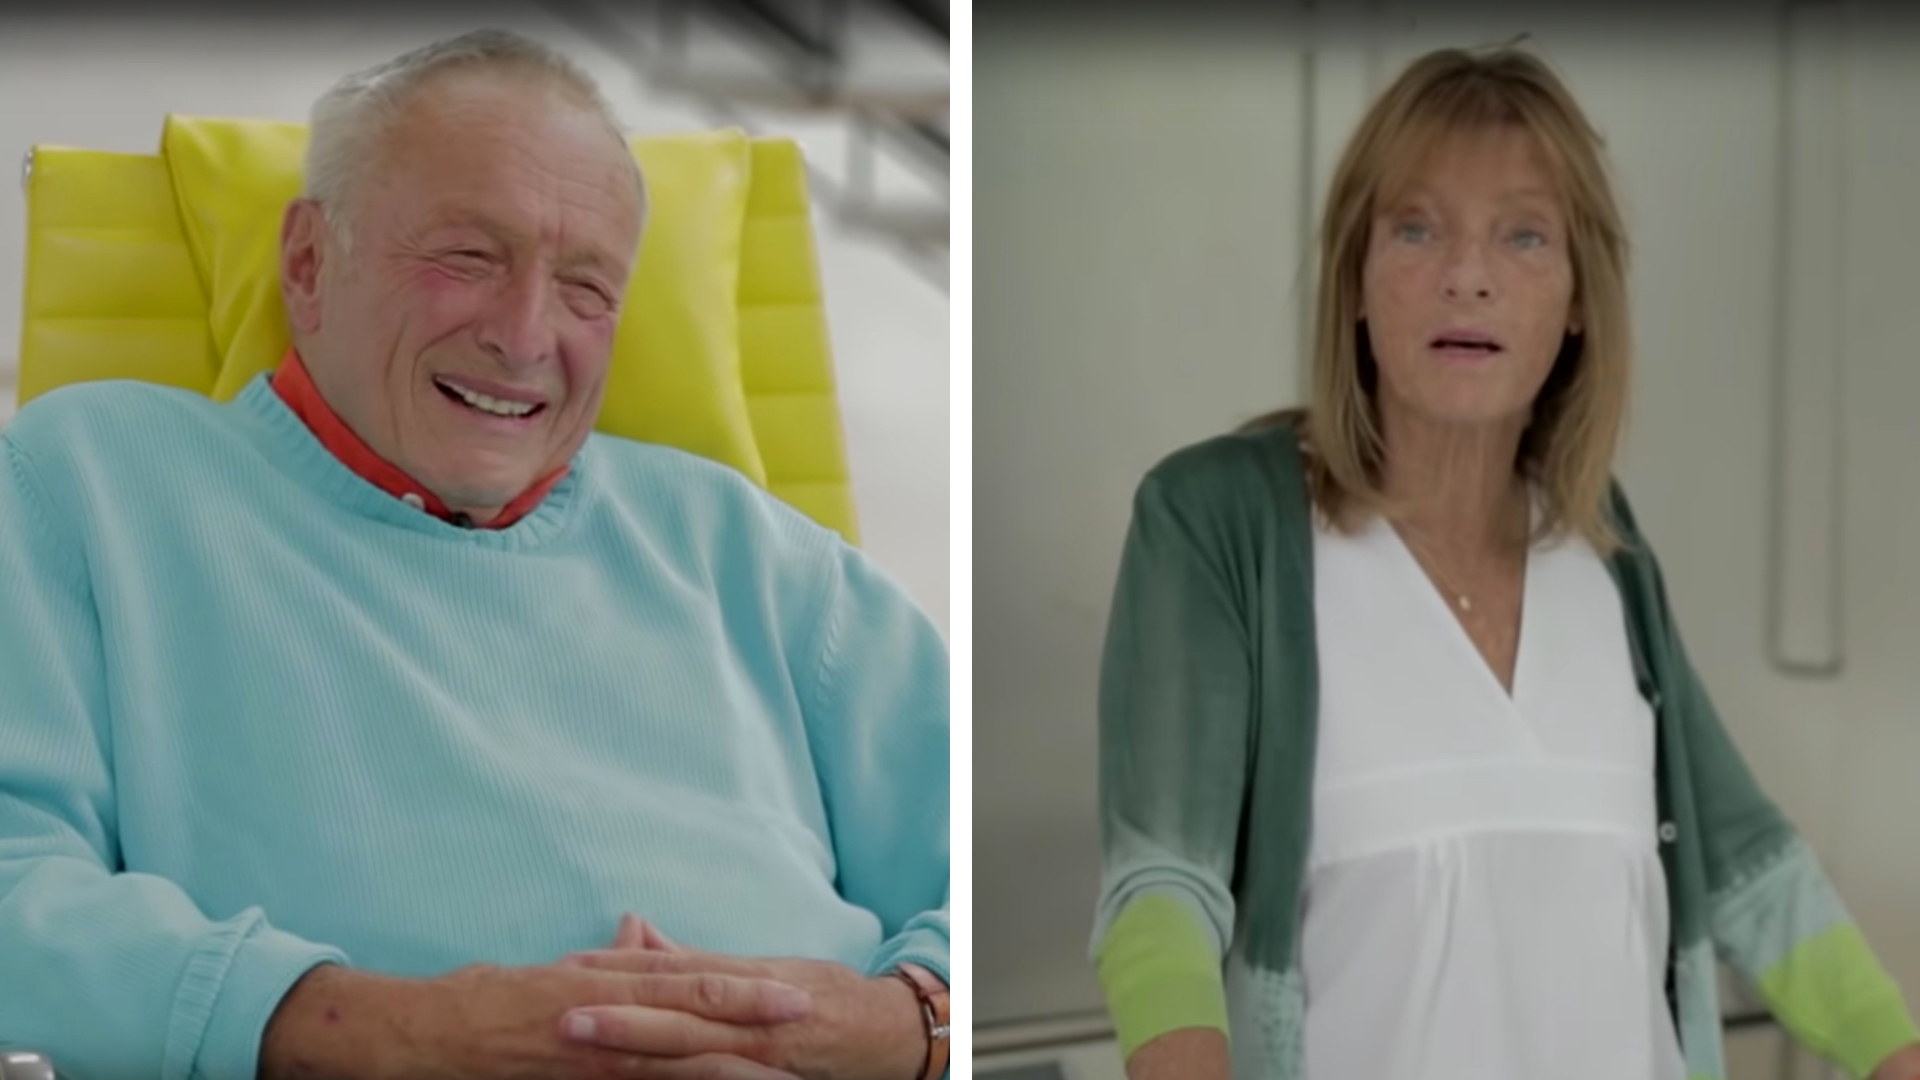 Inside the house of celebrated architect Richard Rogers and his restaurateur wife Ruth Rogers, in Chelsea, London| Ruth and Richard Rogers | In Residence | NOWNESS | STIRworld